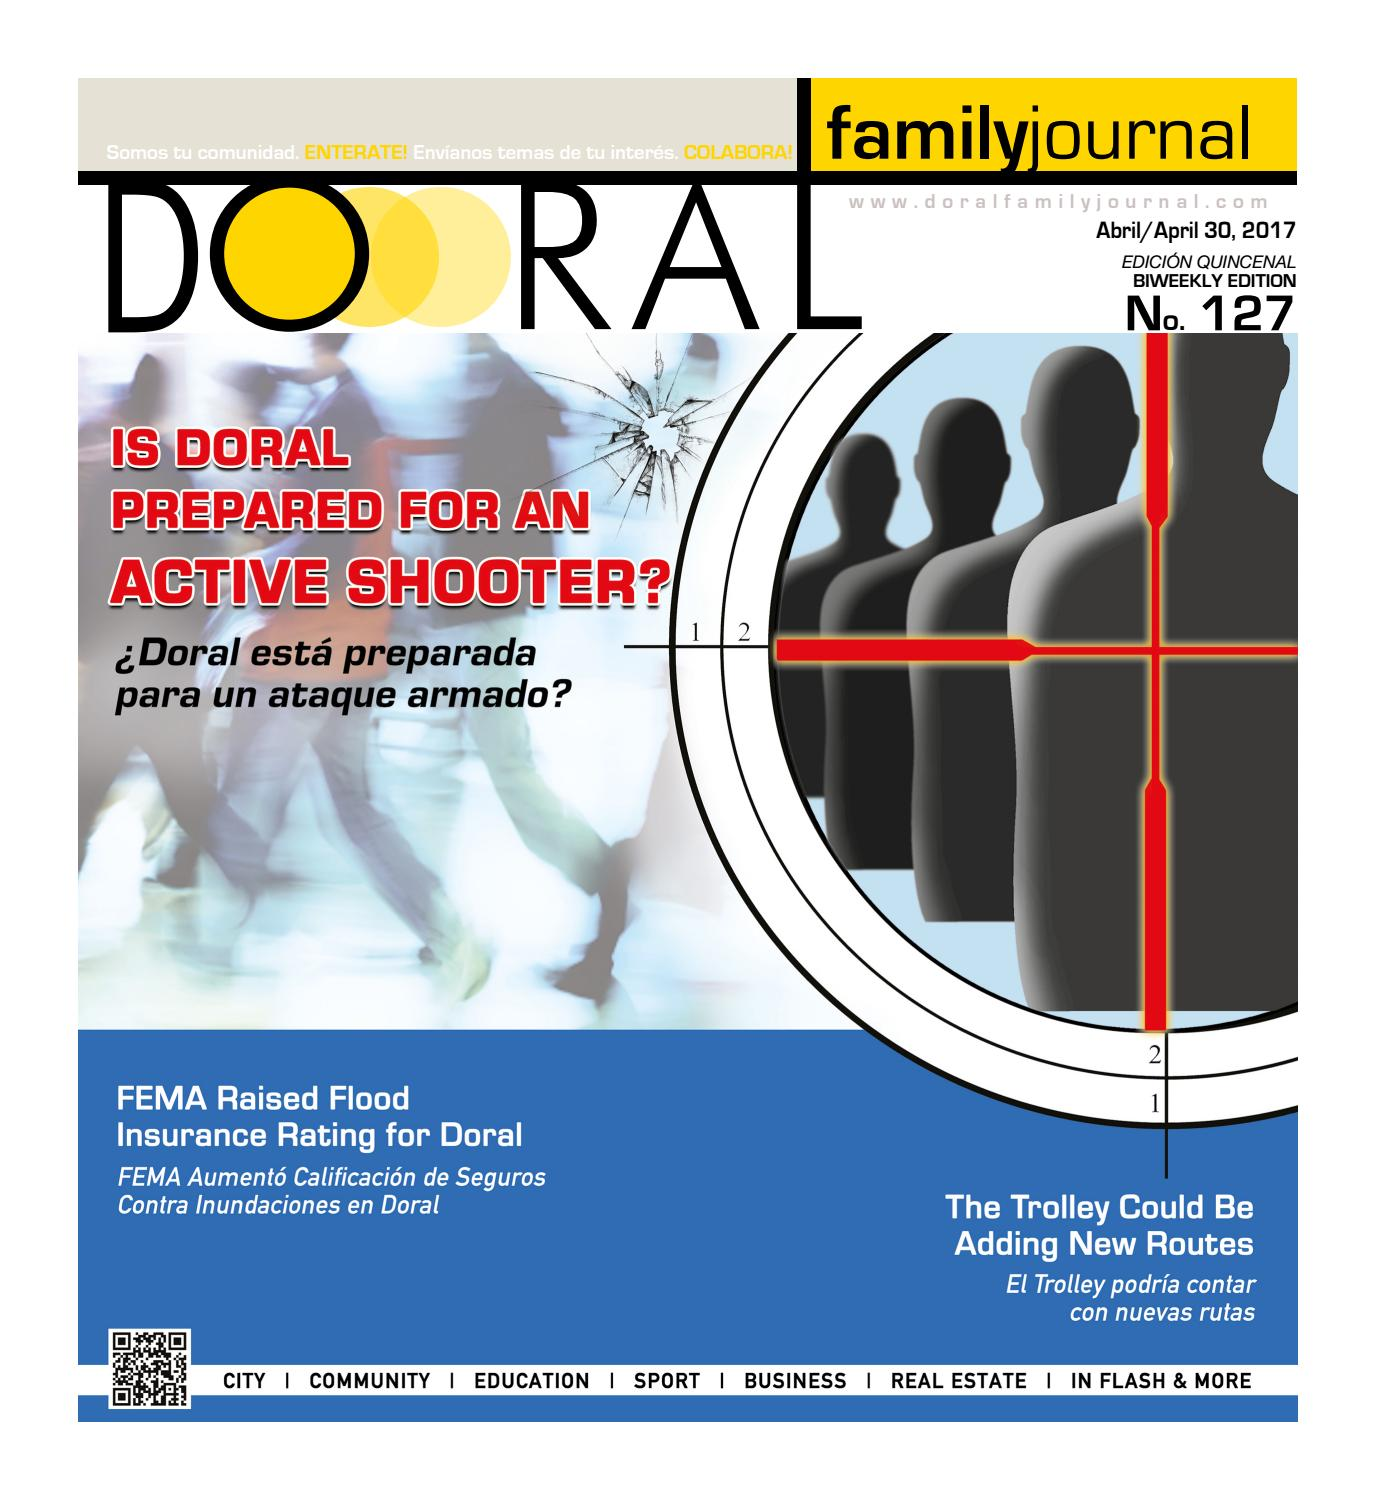 DORAL FAMILY JOURNAL # 127 by DORAL FAMILY JOURNAL - issuu